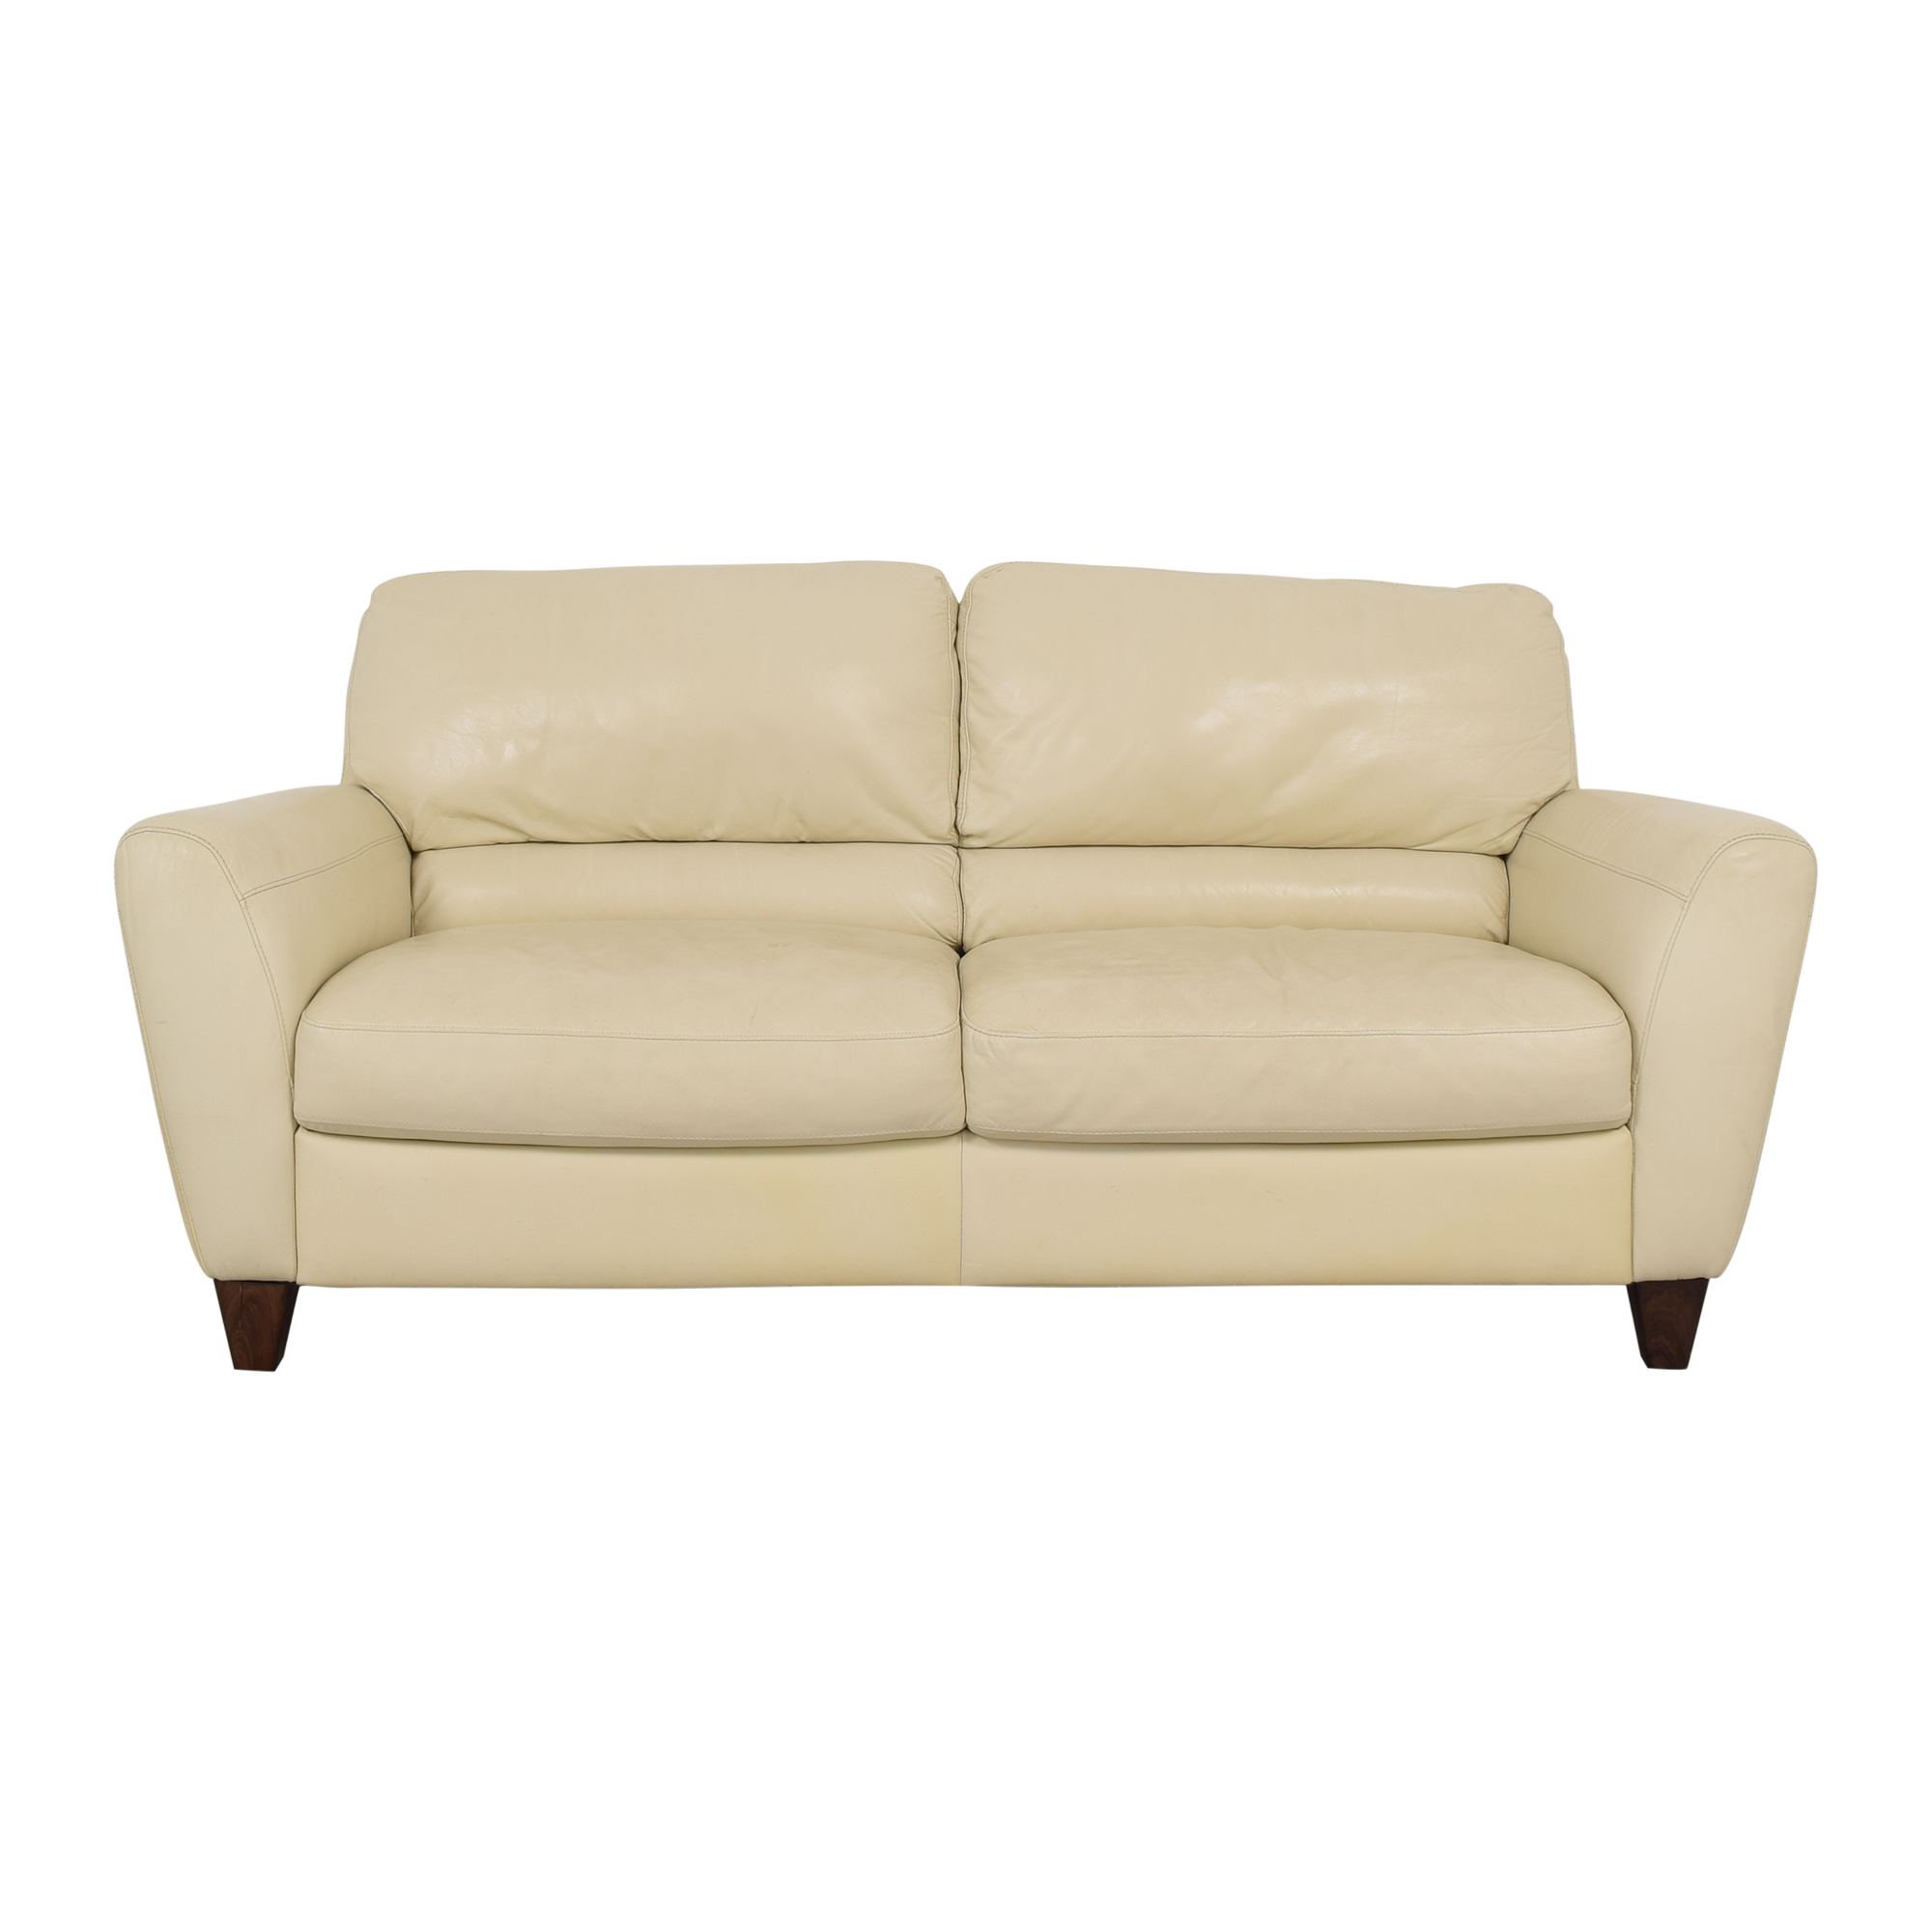 Macy's Italsofa Two Cushion Sofa / Classic Sofas